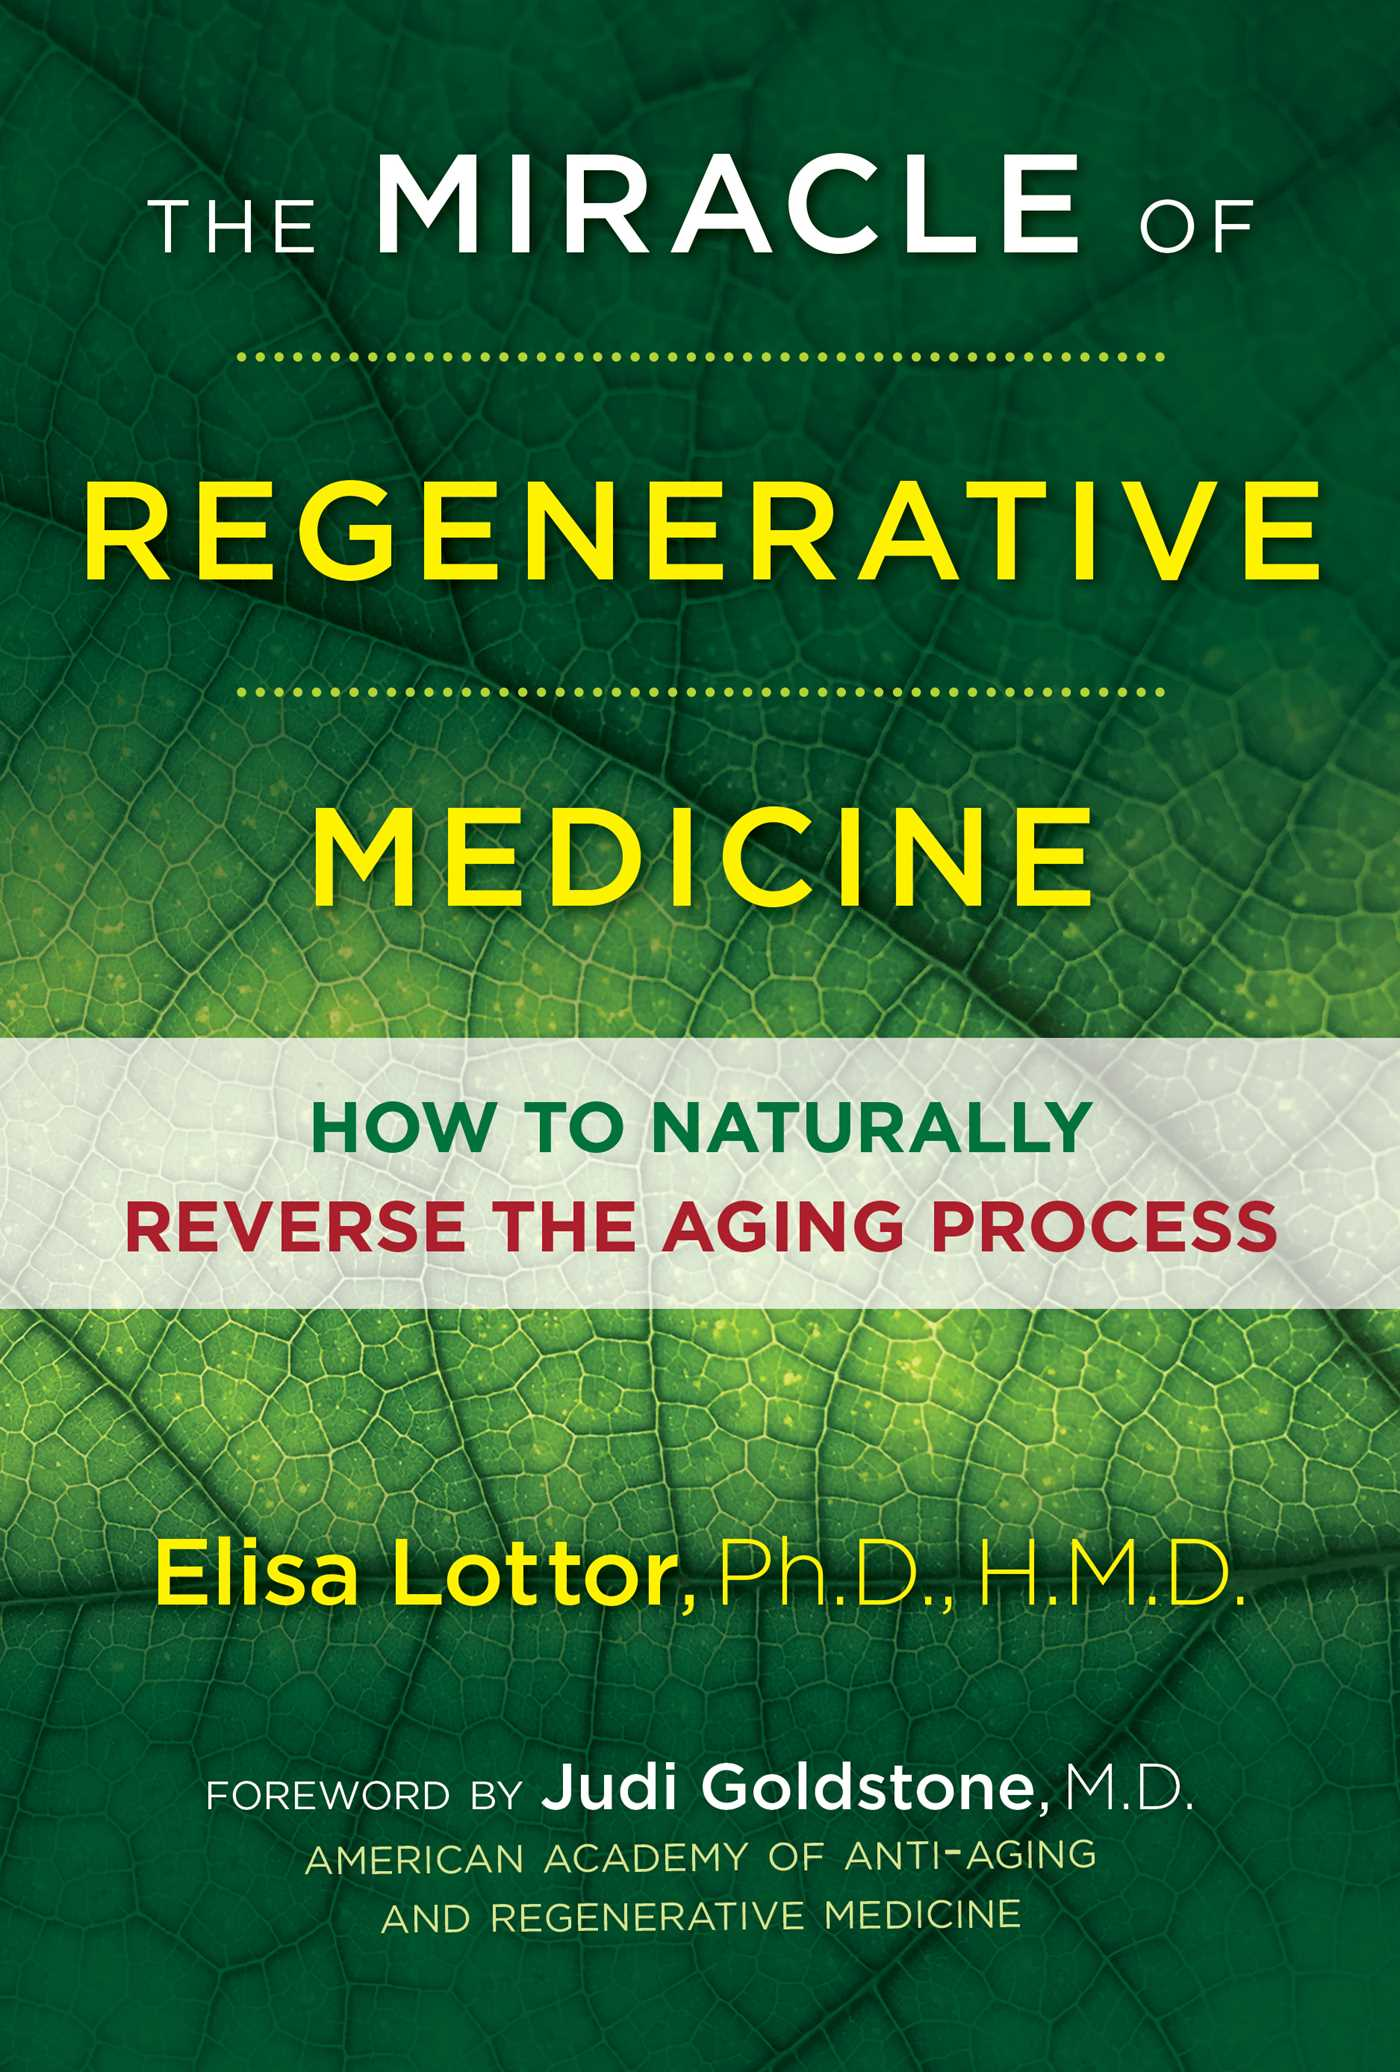 The miracle of regenerative medicine 9781620556030 hr